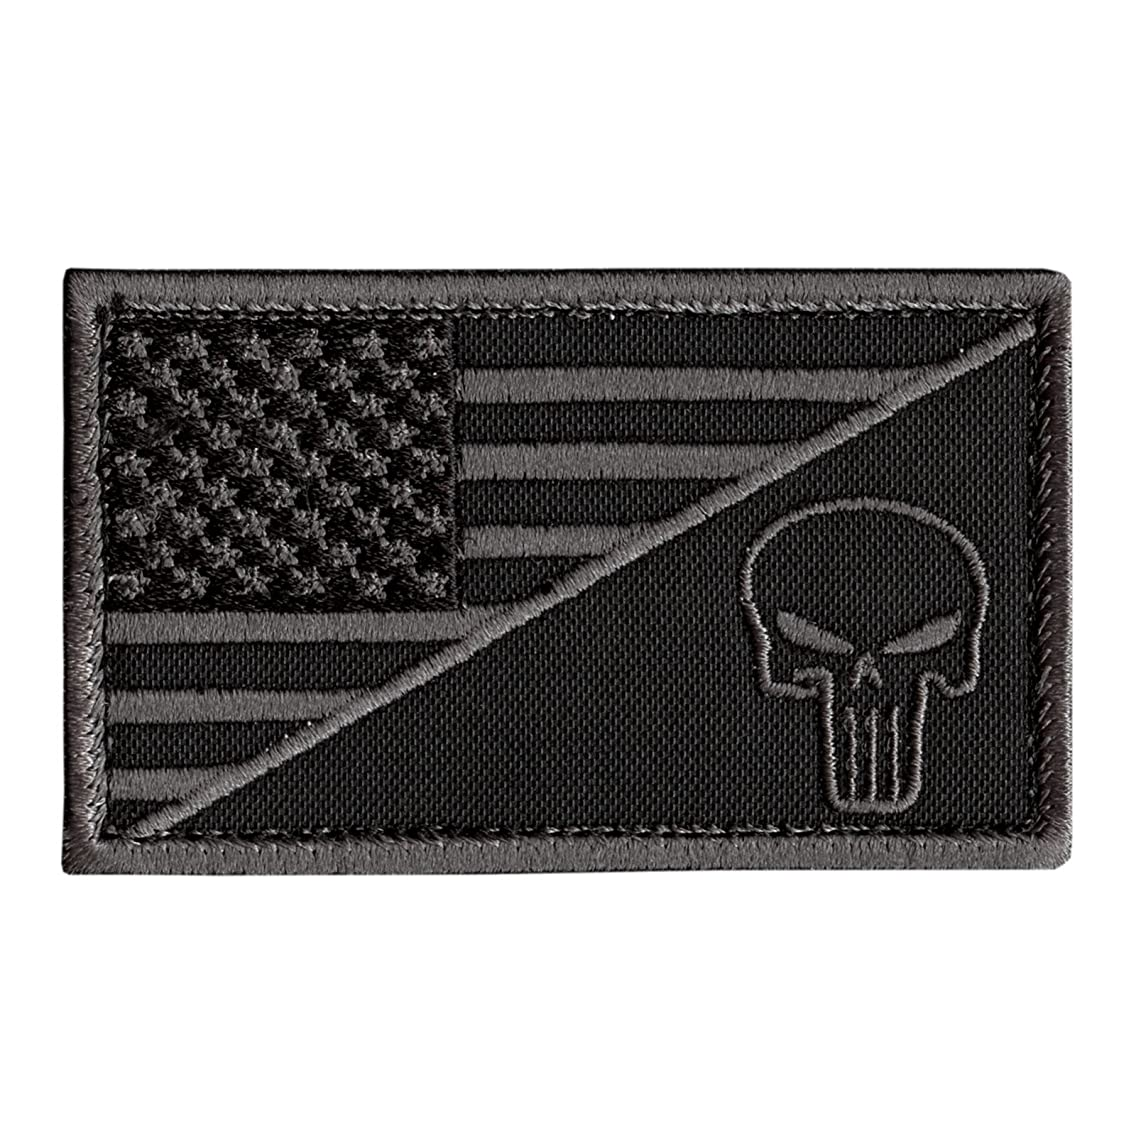 LEGEEON Black Subdued USA Flag Punisher Skull ACU Navy Seals Morale Army Gear Hook-and-Loop Patch